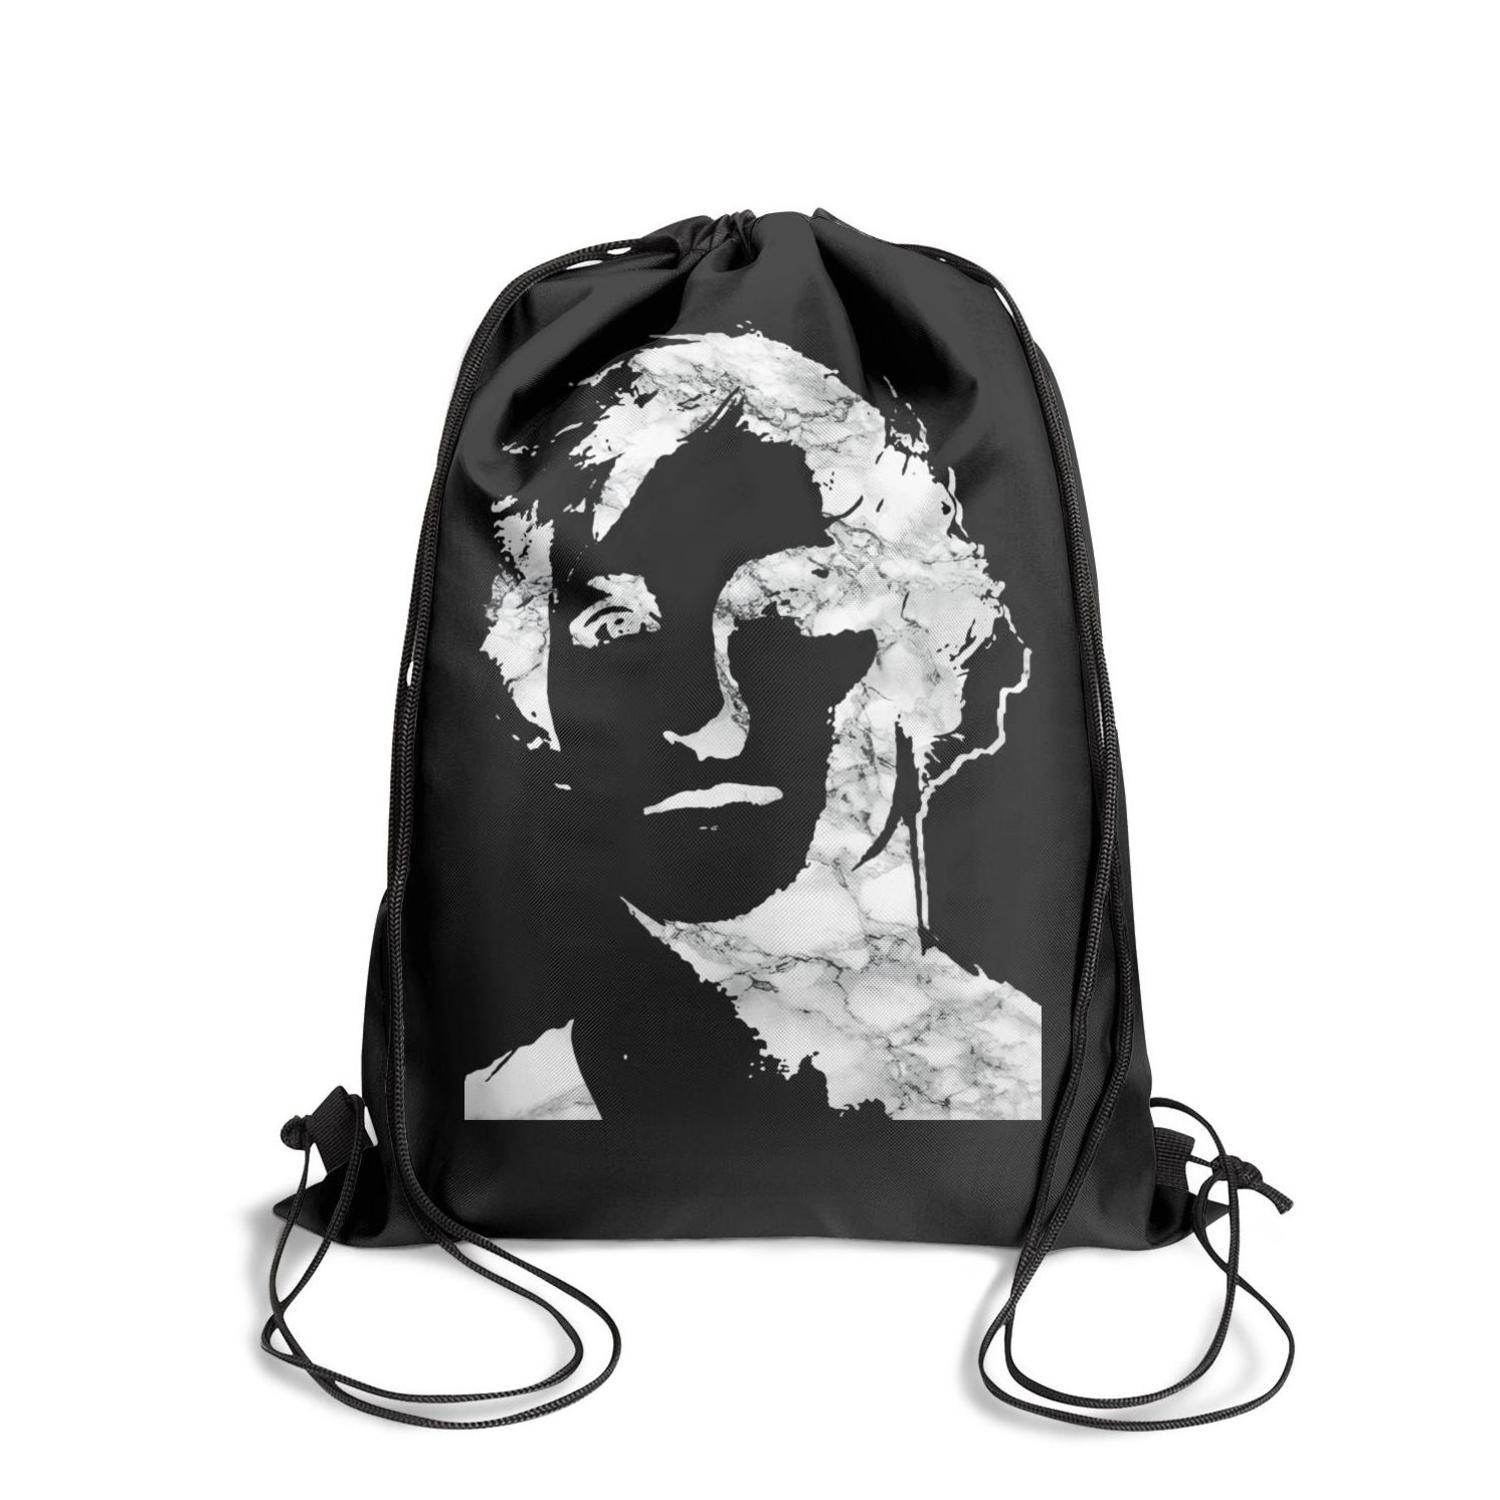 Drawstring Sports Backpack Logan Paul Online video White marbleoutdoor adjustable school Travel Fabric Backpack